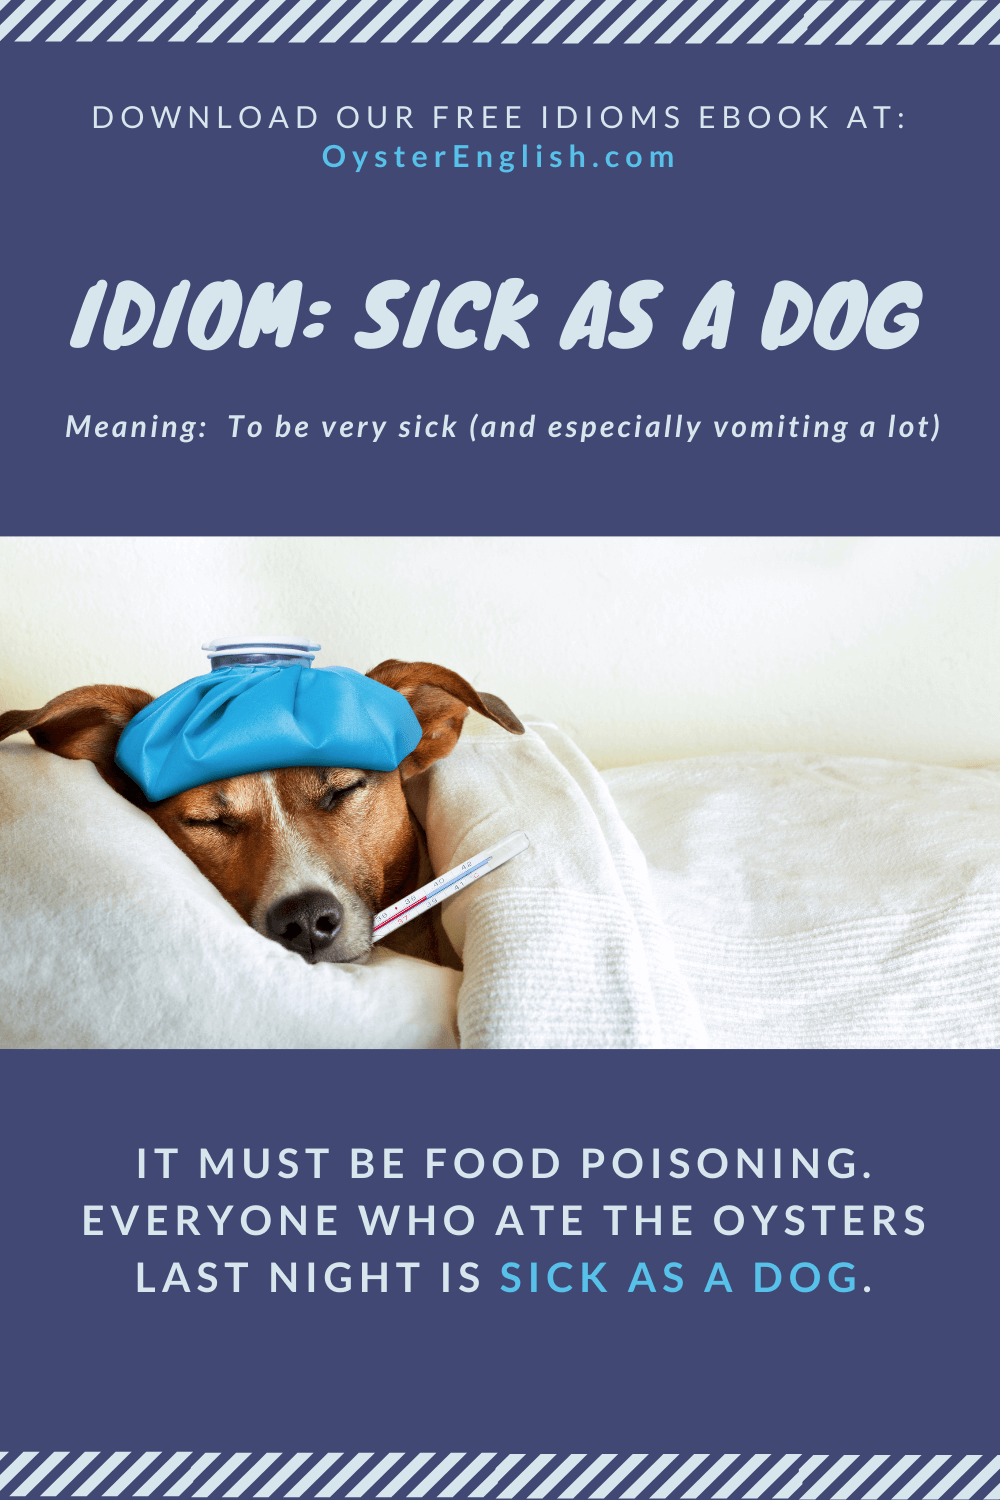 Picture of a sick dog in a bed with a water bottle on its head and a thermometer in its mouth. Example: It must be food poisoning. Everyone who ate the oysters last night is sick as a dog.